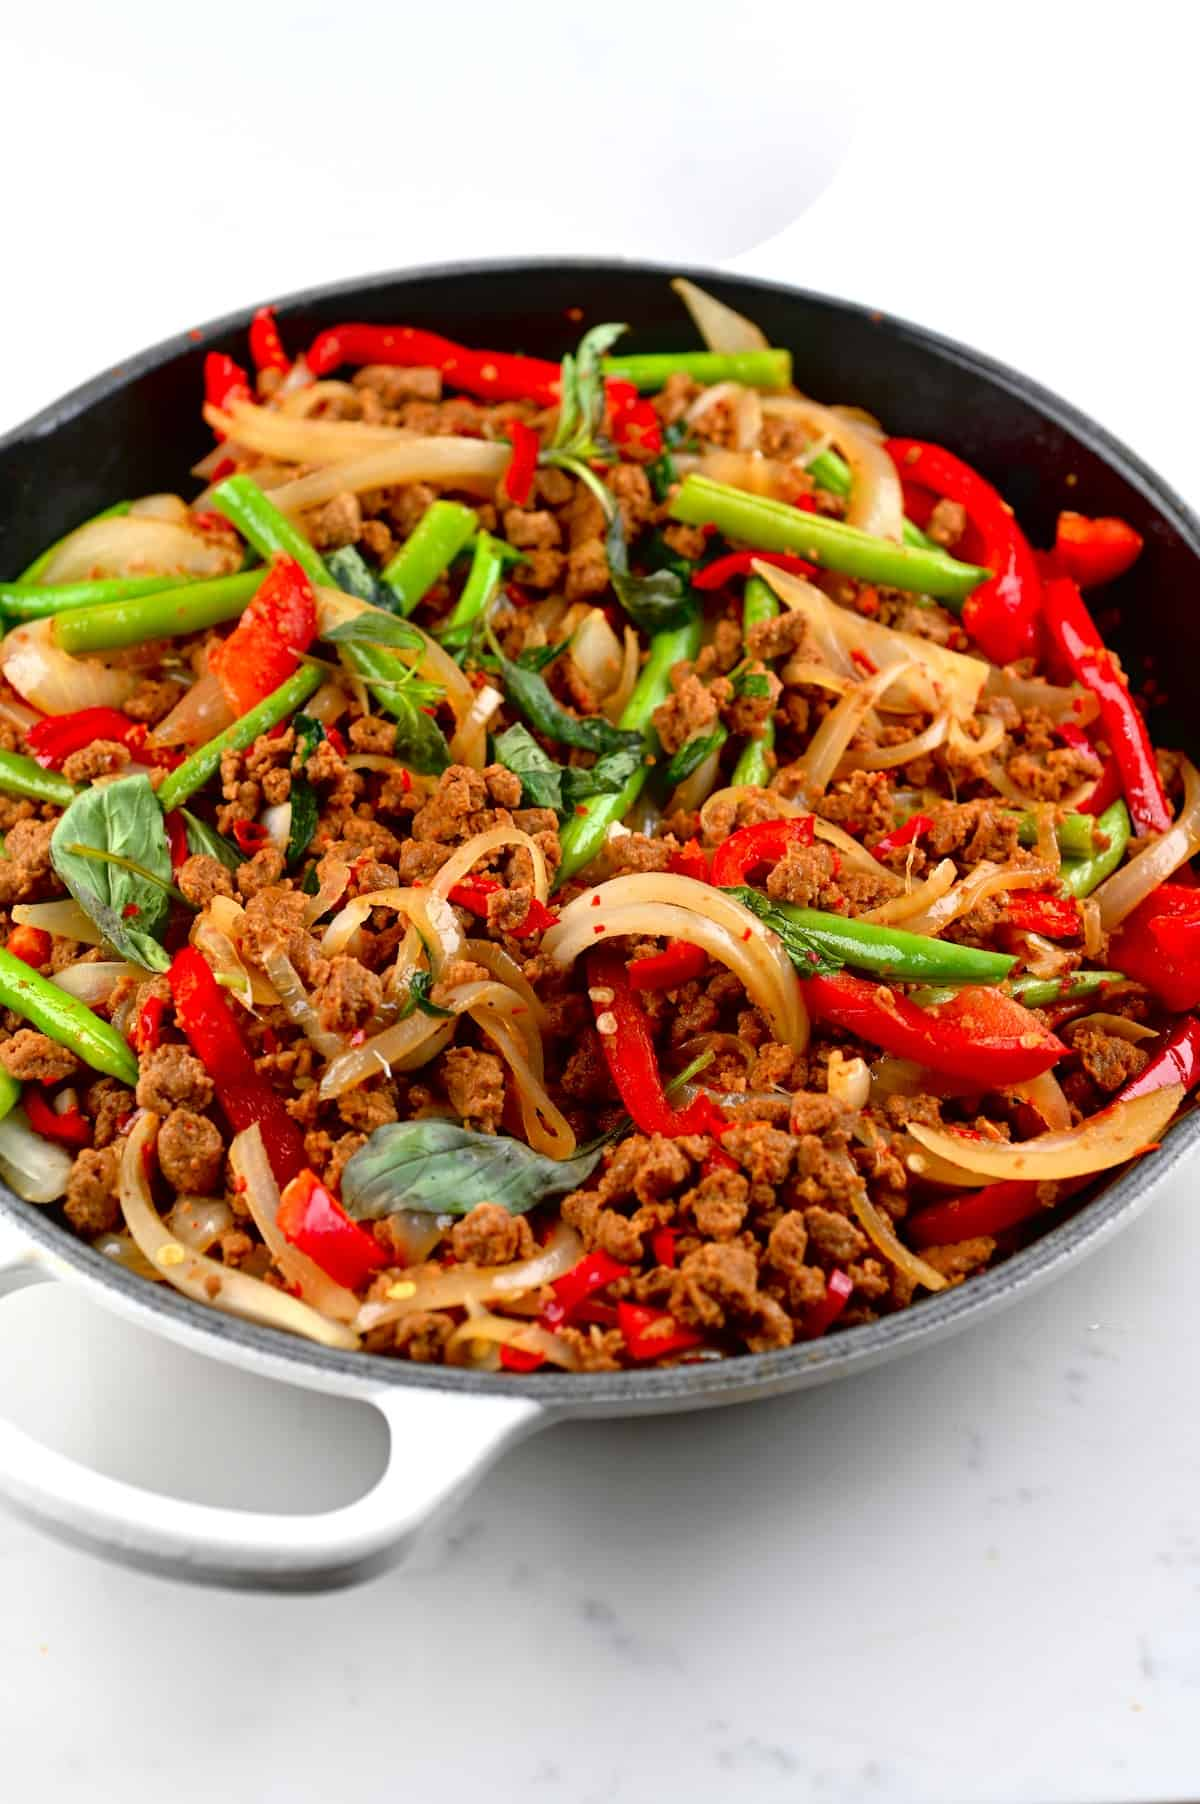 A close up of pan with cooked Thai basil vegan beef with soy mince